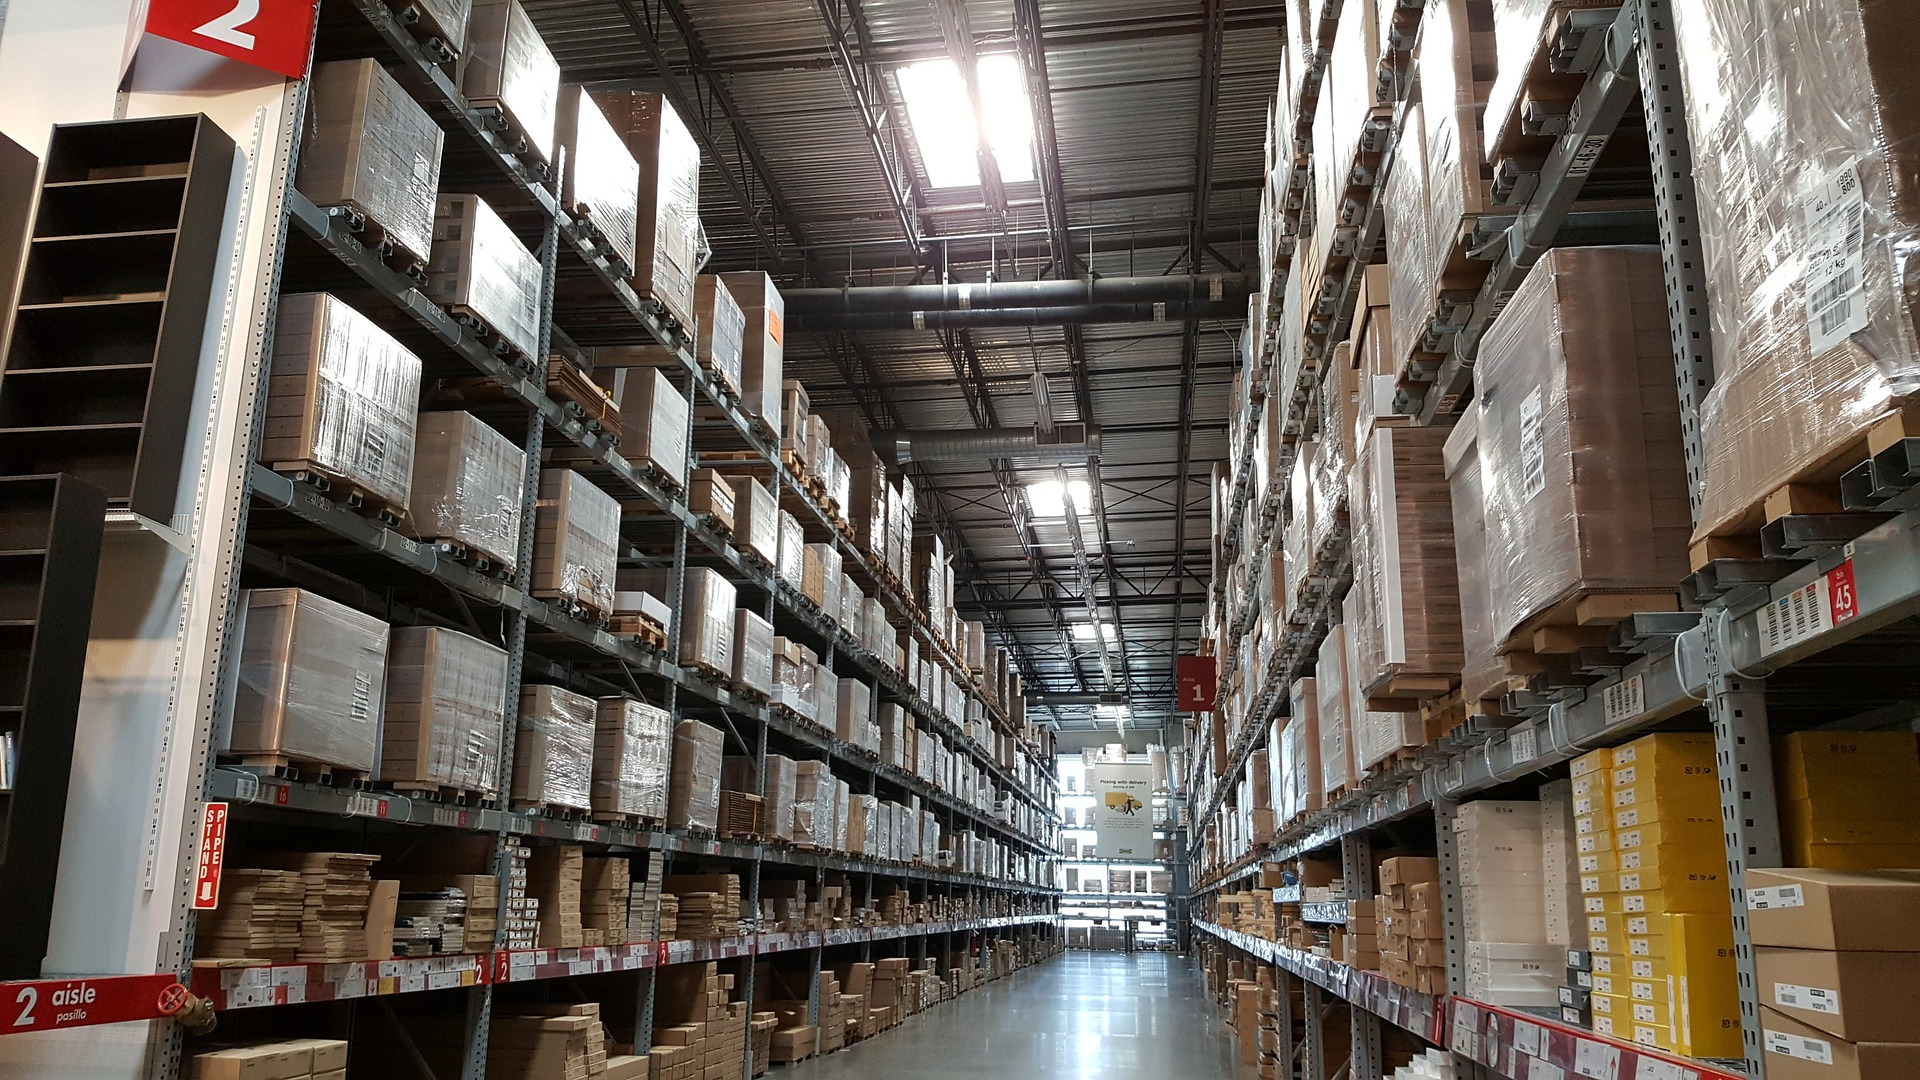 A warehouse with shelves filled with boxes floor to ceiling.